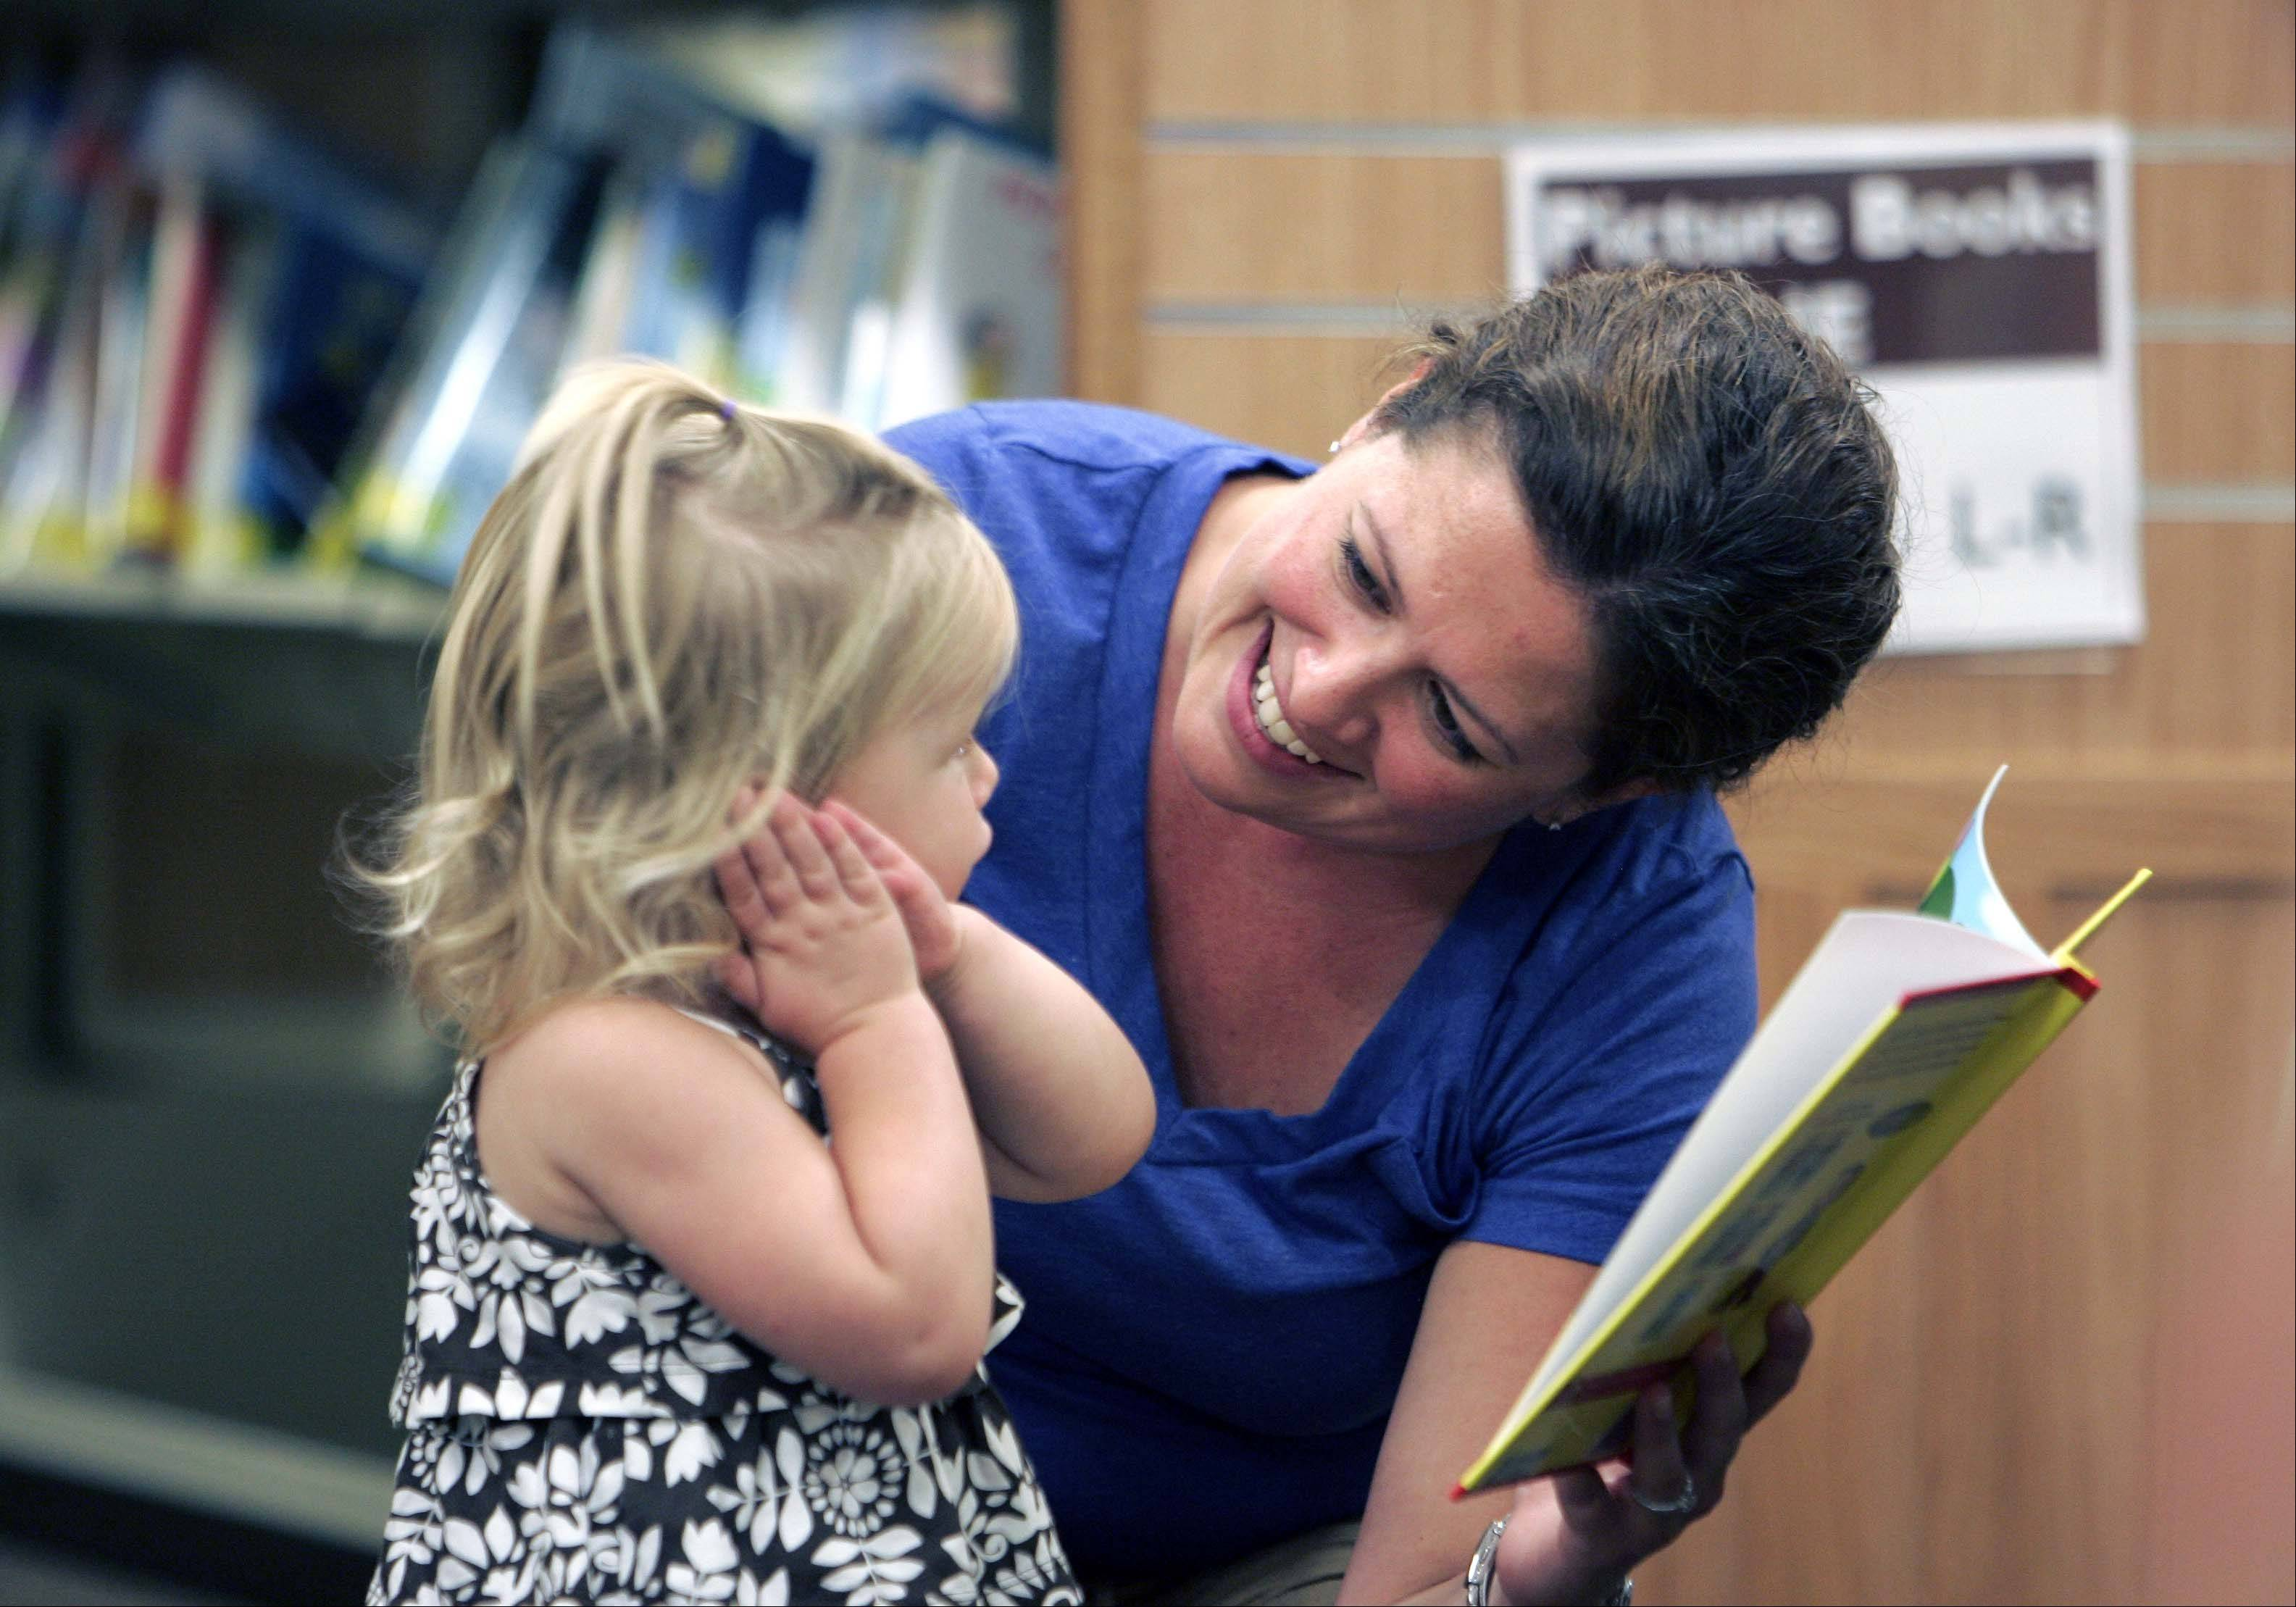 Rachel Vanderkamp of Carpentersville reads to her 1-year-old daughter Nora in the West Side branch of the Fox River Valley Public Library District, located in Randall Oaks Recreation Center, which is part of the Dundee Township Park District. The library district is leasing 5,000 square feet from the park district for the next five years, but officials say a new home will likely be necessary after that.